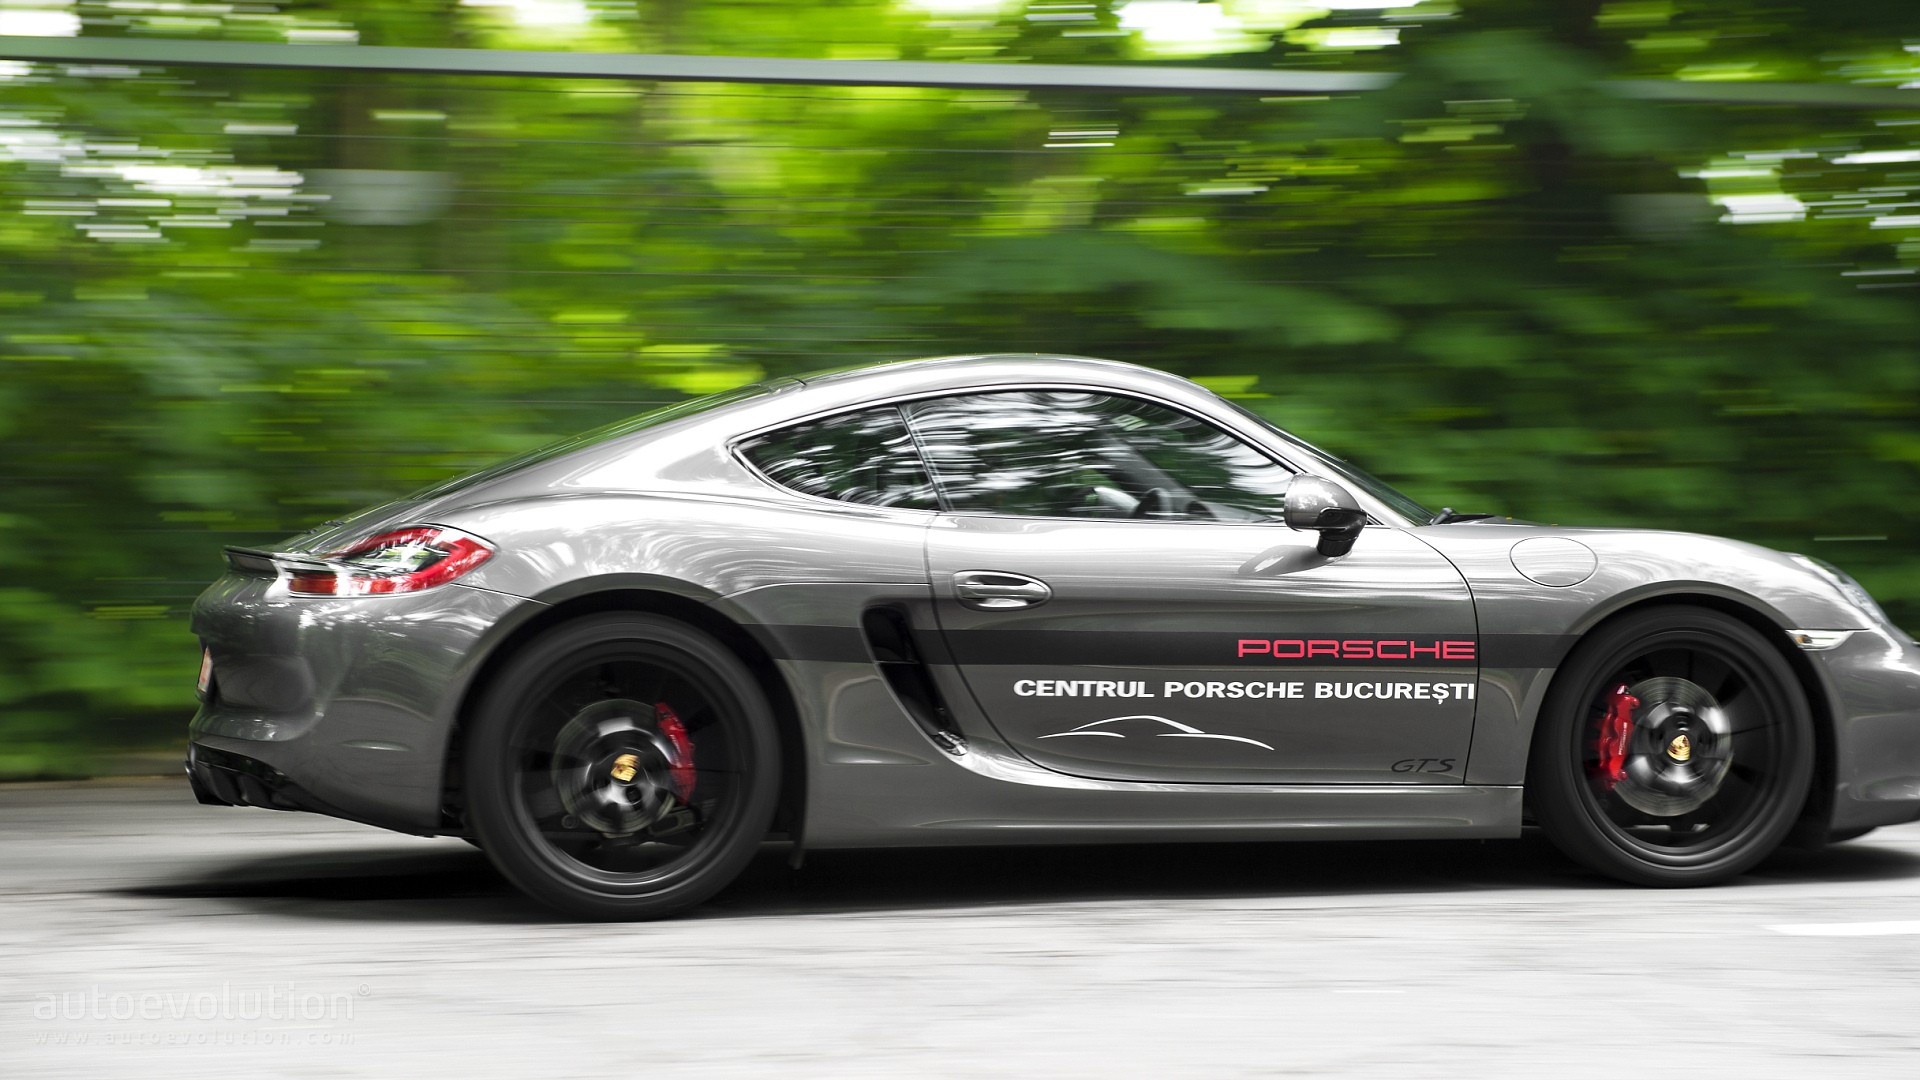 2015 porsche cayman gts review - autoevolution